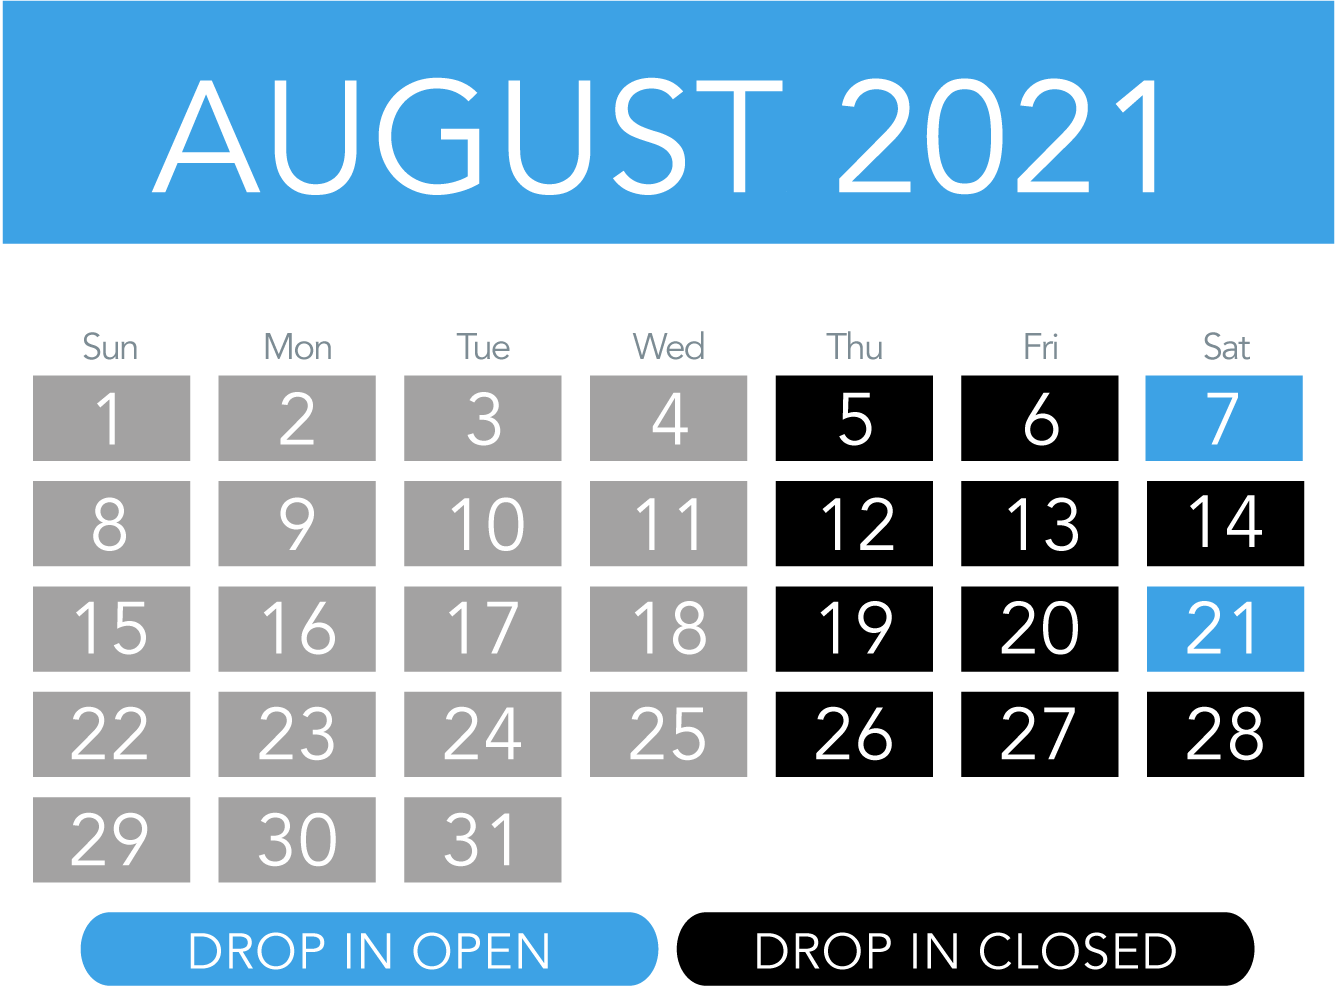 https://aerialsgymclub.ca/wp-content/uploads/2021/07/DRop-in-cal-aug2021-09.png